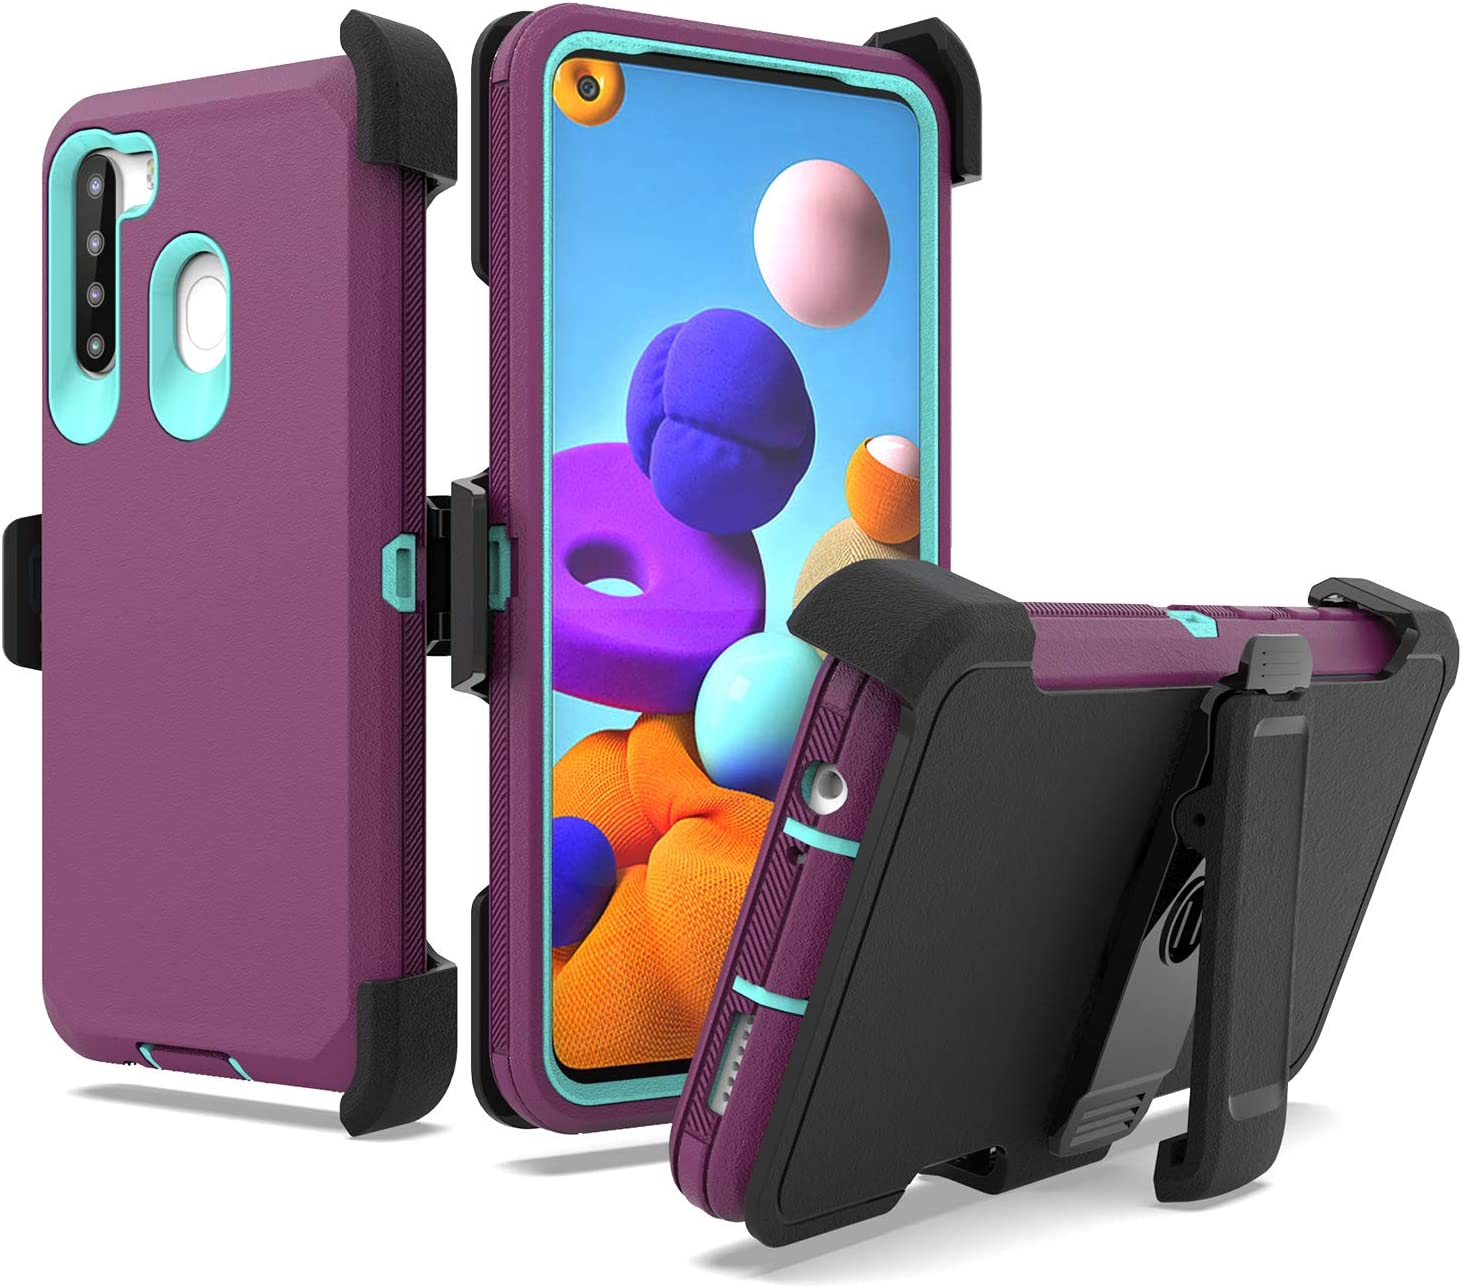 UNC Pro 3 in 1 Belt Clip Holster Cell Phone Case for Samsung Galaxy A21, Heavy Duty Hybrid Shockproof Bumper Case with Kickstand, Fuchsia/Teal